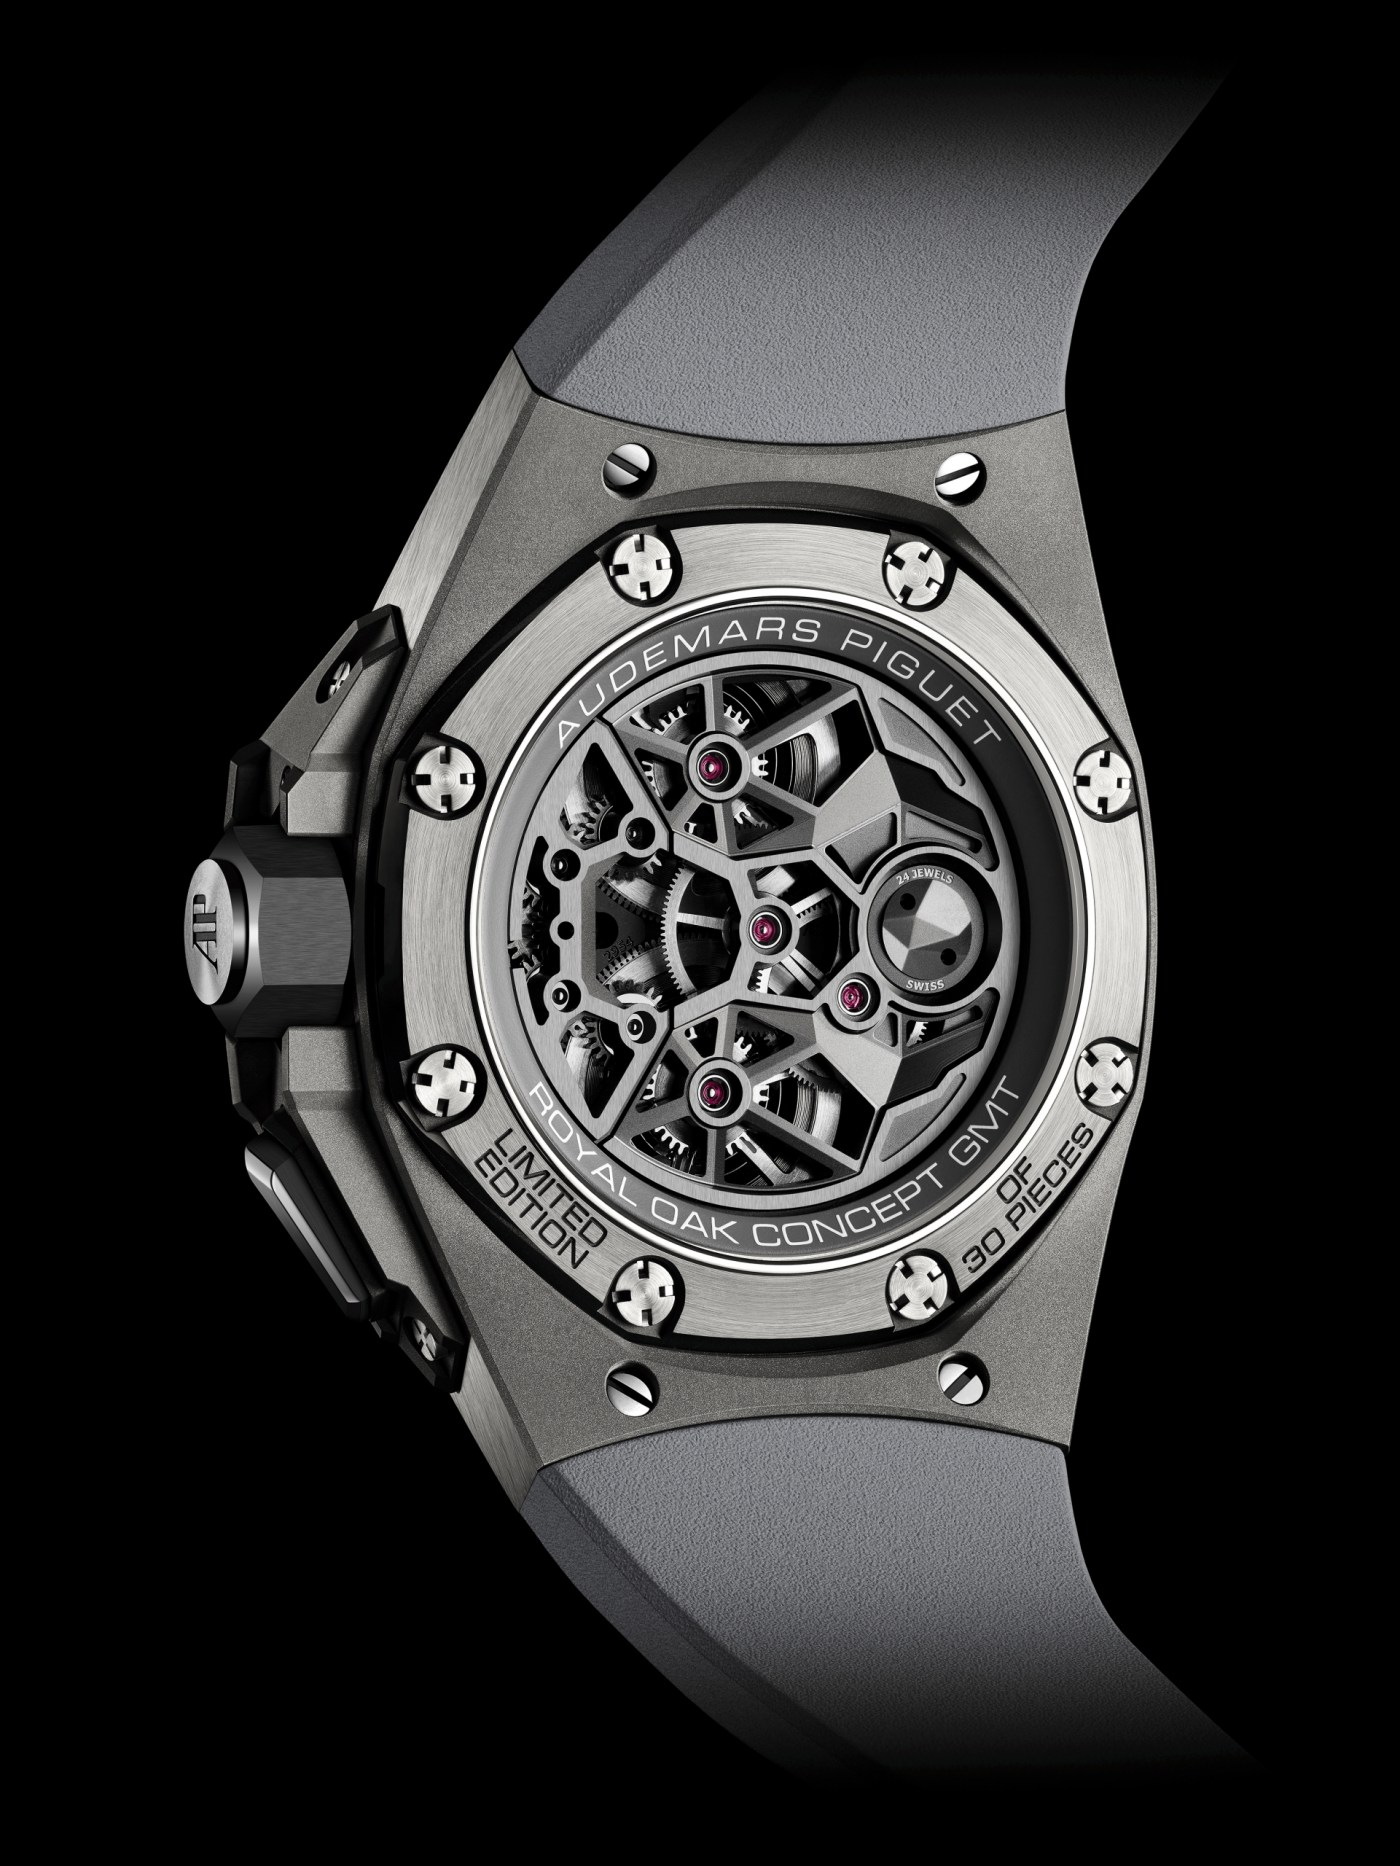 2020 Audemars Piguet Royal Oak Concept Flying Tourbillon GMT caseback